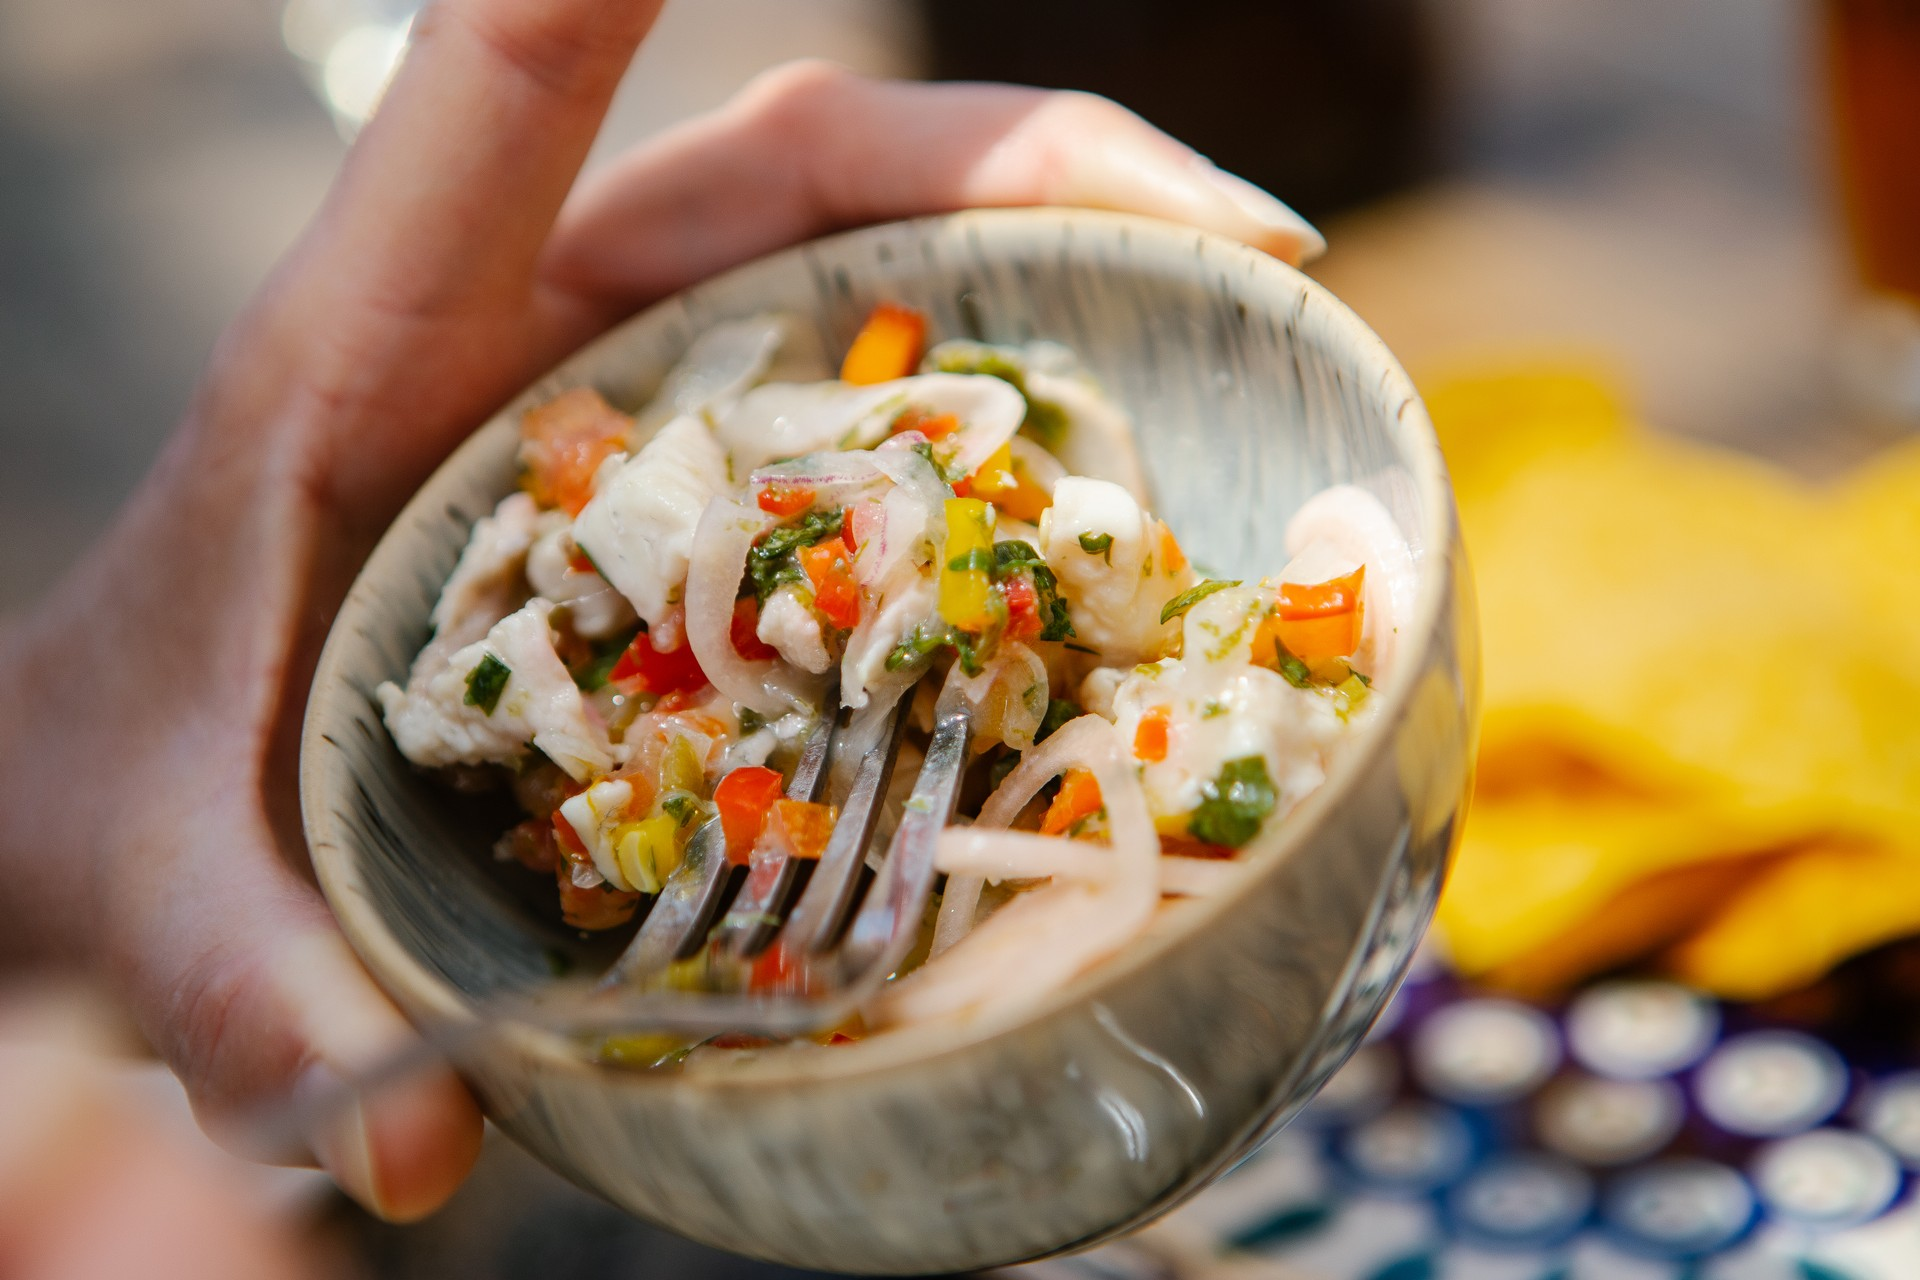 Fresh ceviche being prepared in Peru